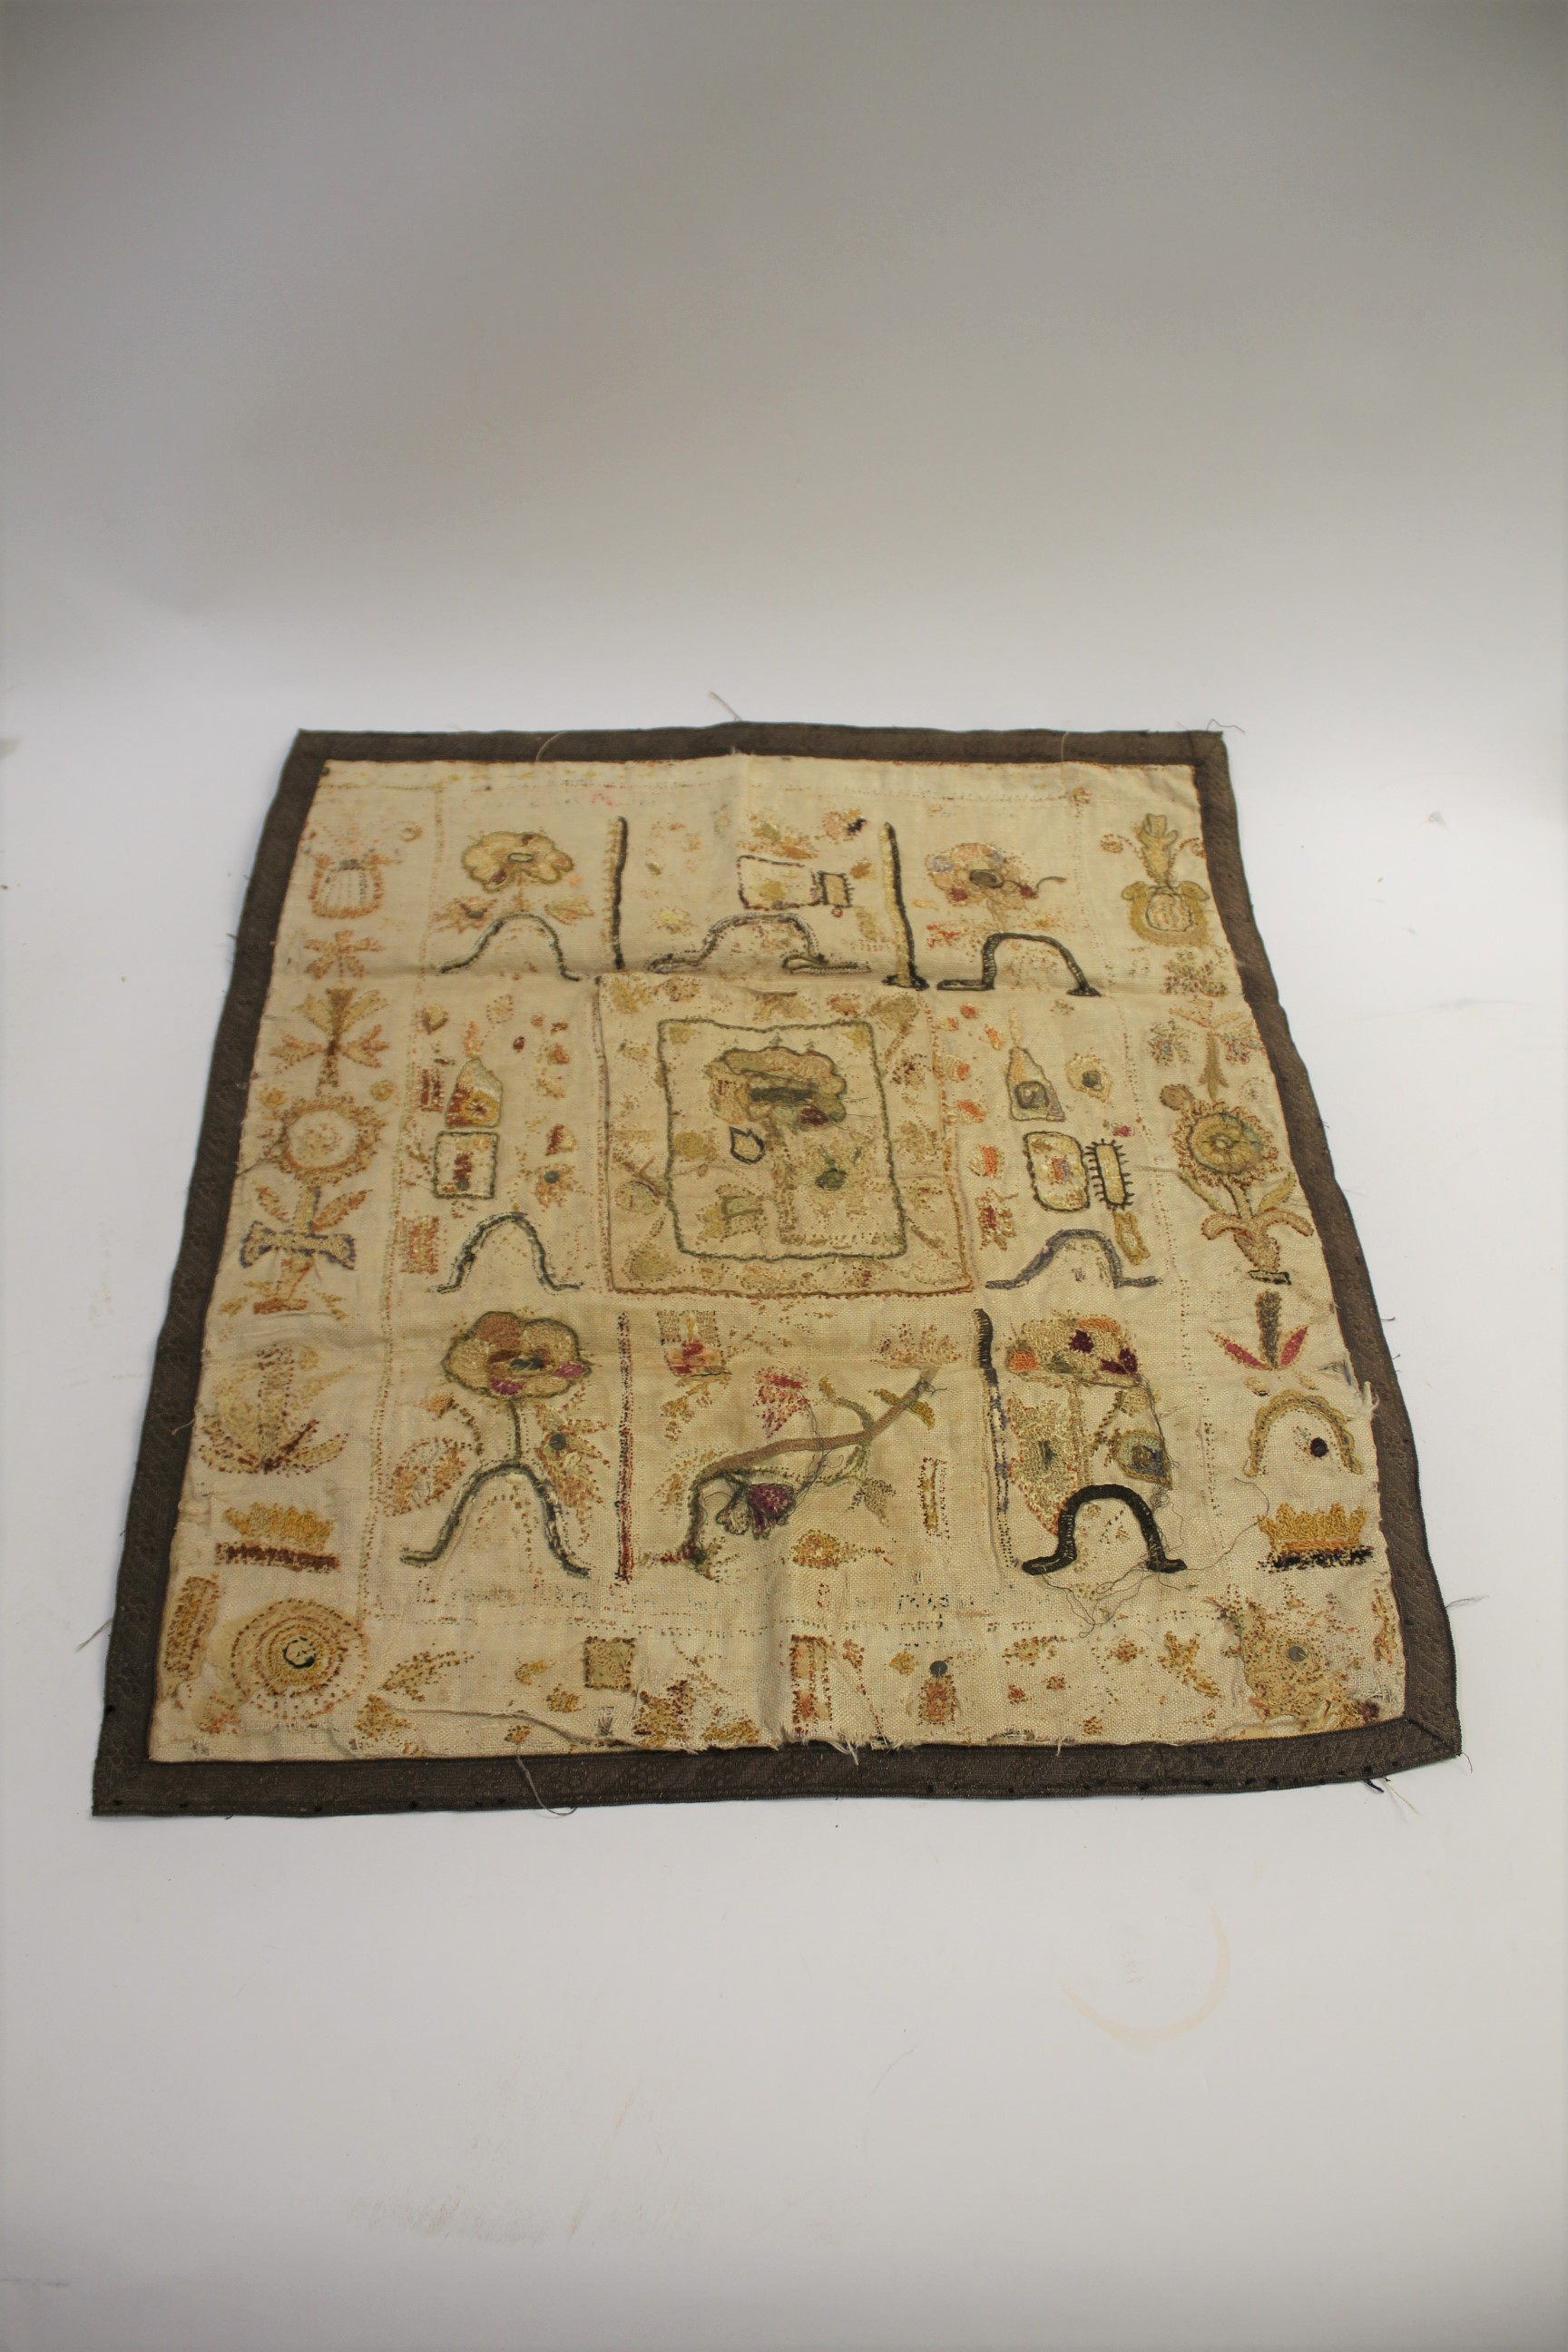 RARE 17THC SPOT SAMPLER a spot sampler onto linen with various flowers depicted, including a later - Image 2 of 2